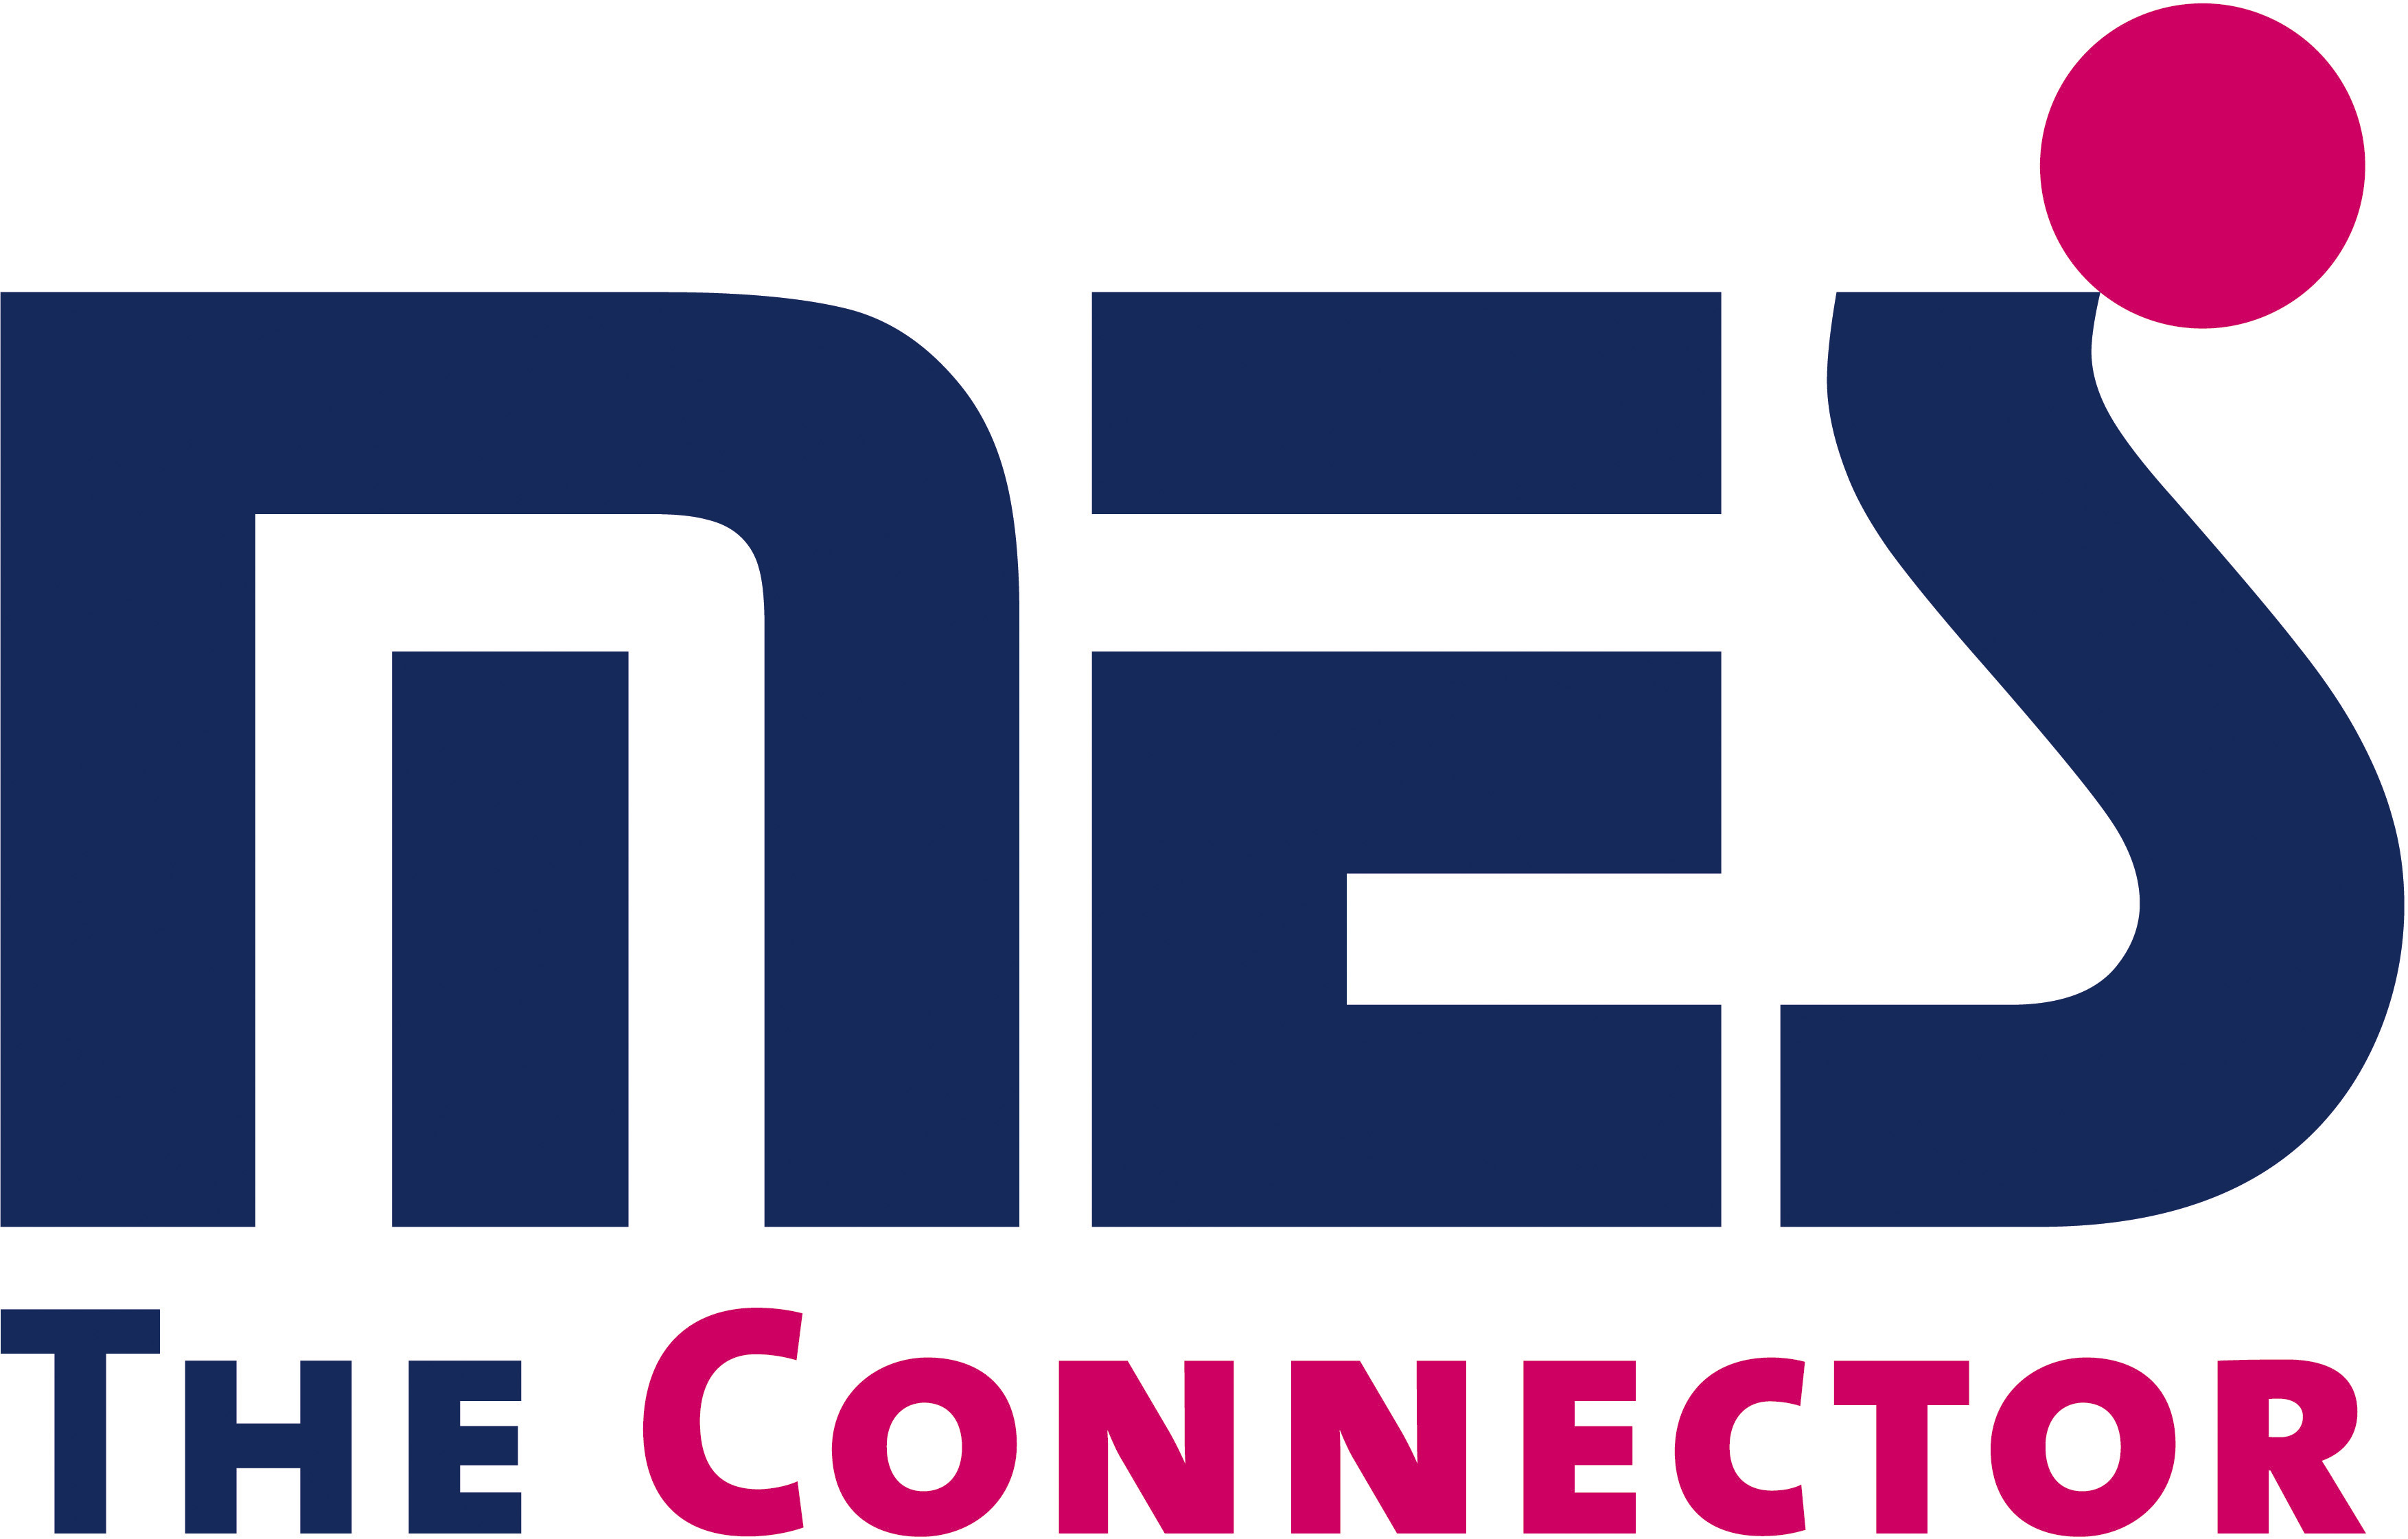 MES Electronic Connect GmbH & Co. KG_logo